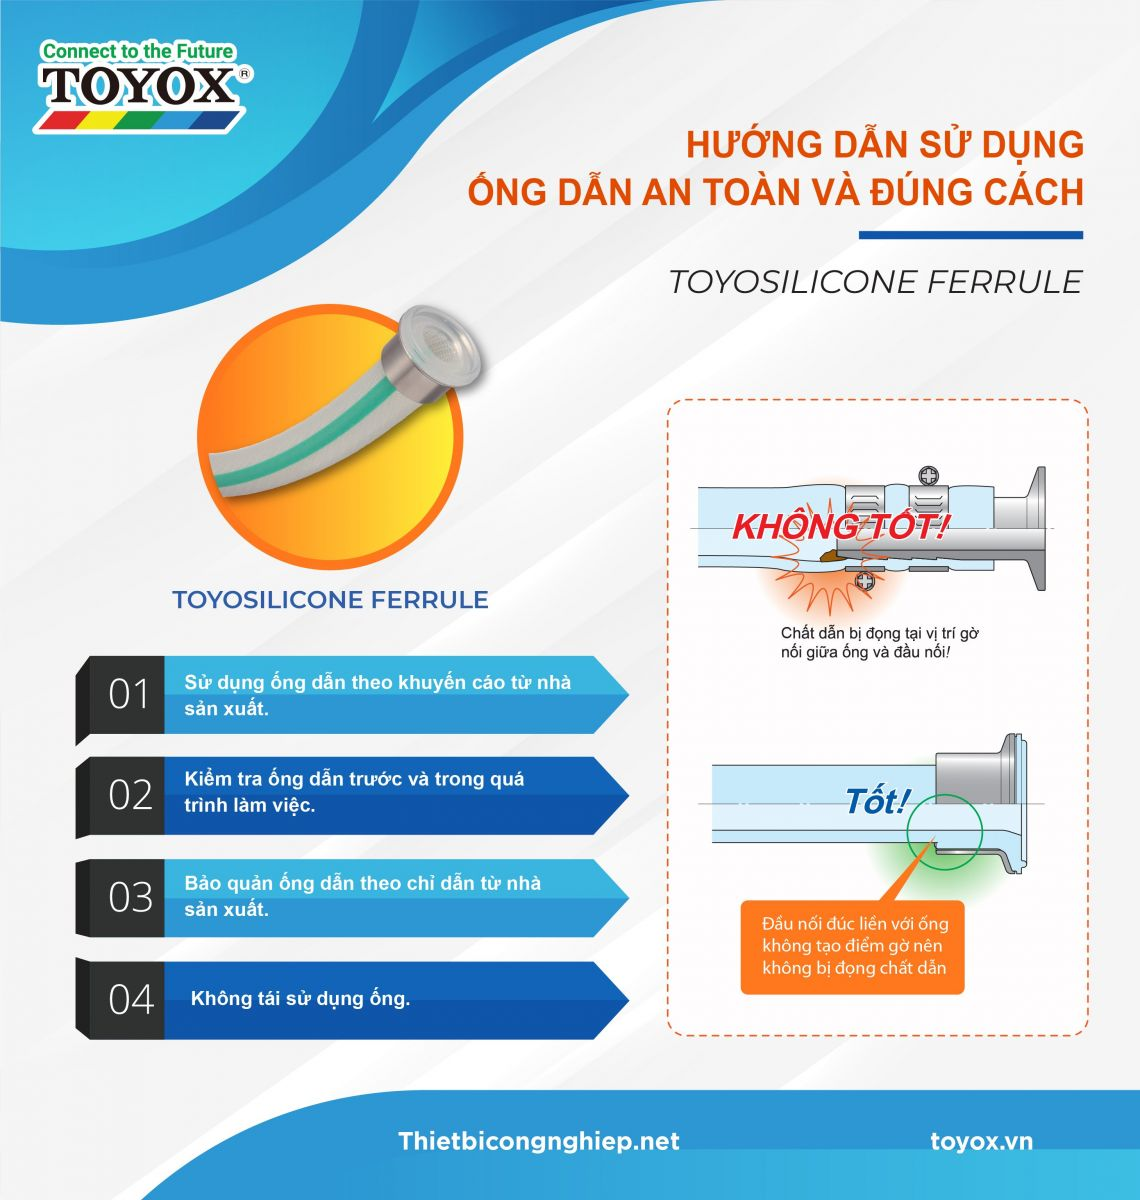 hdsd-ong-toyox